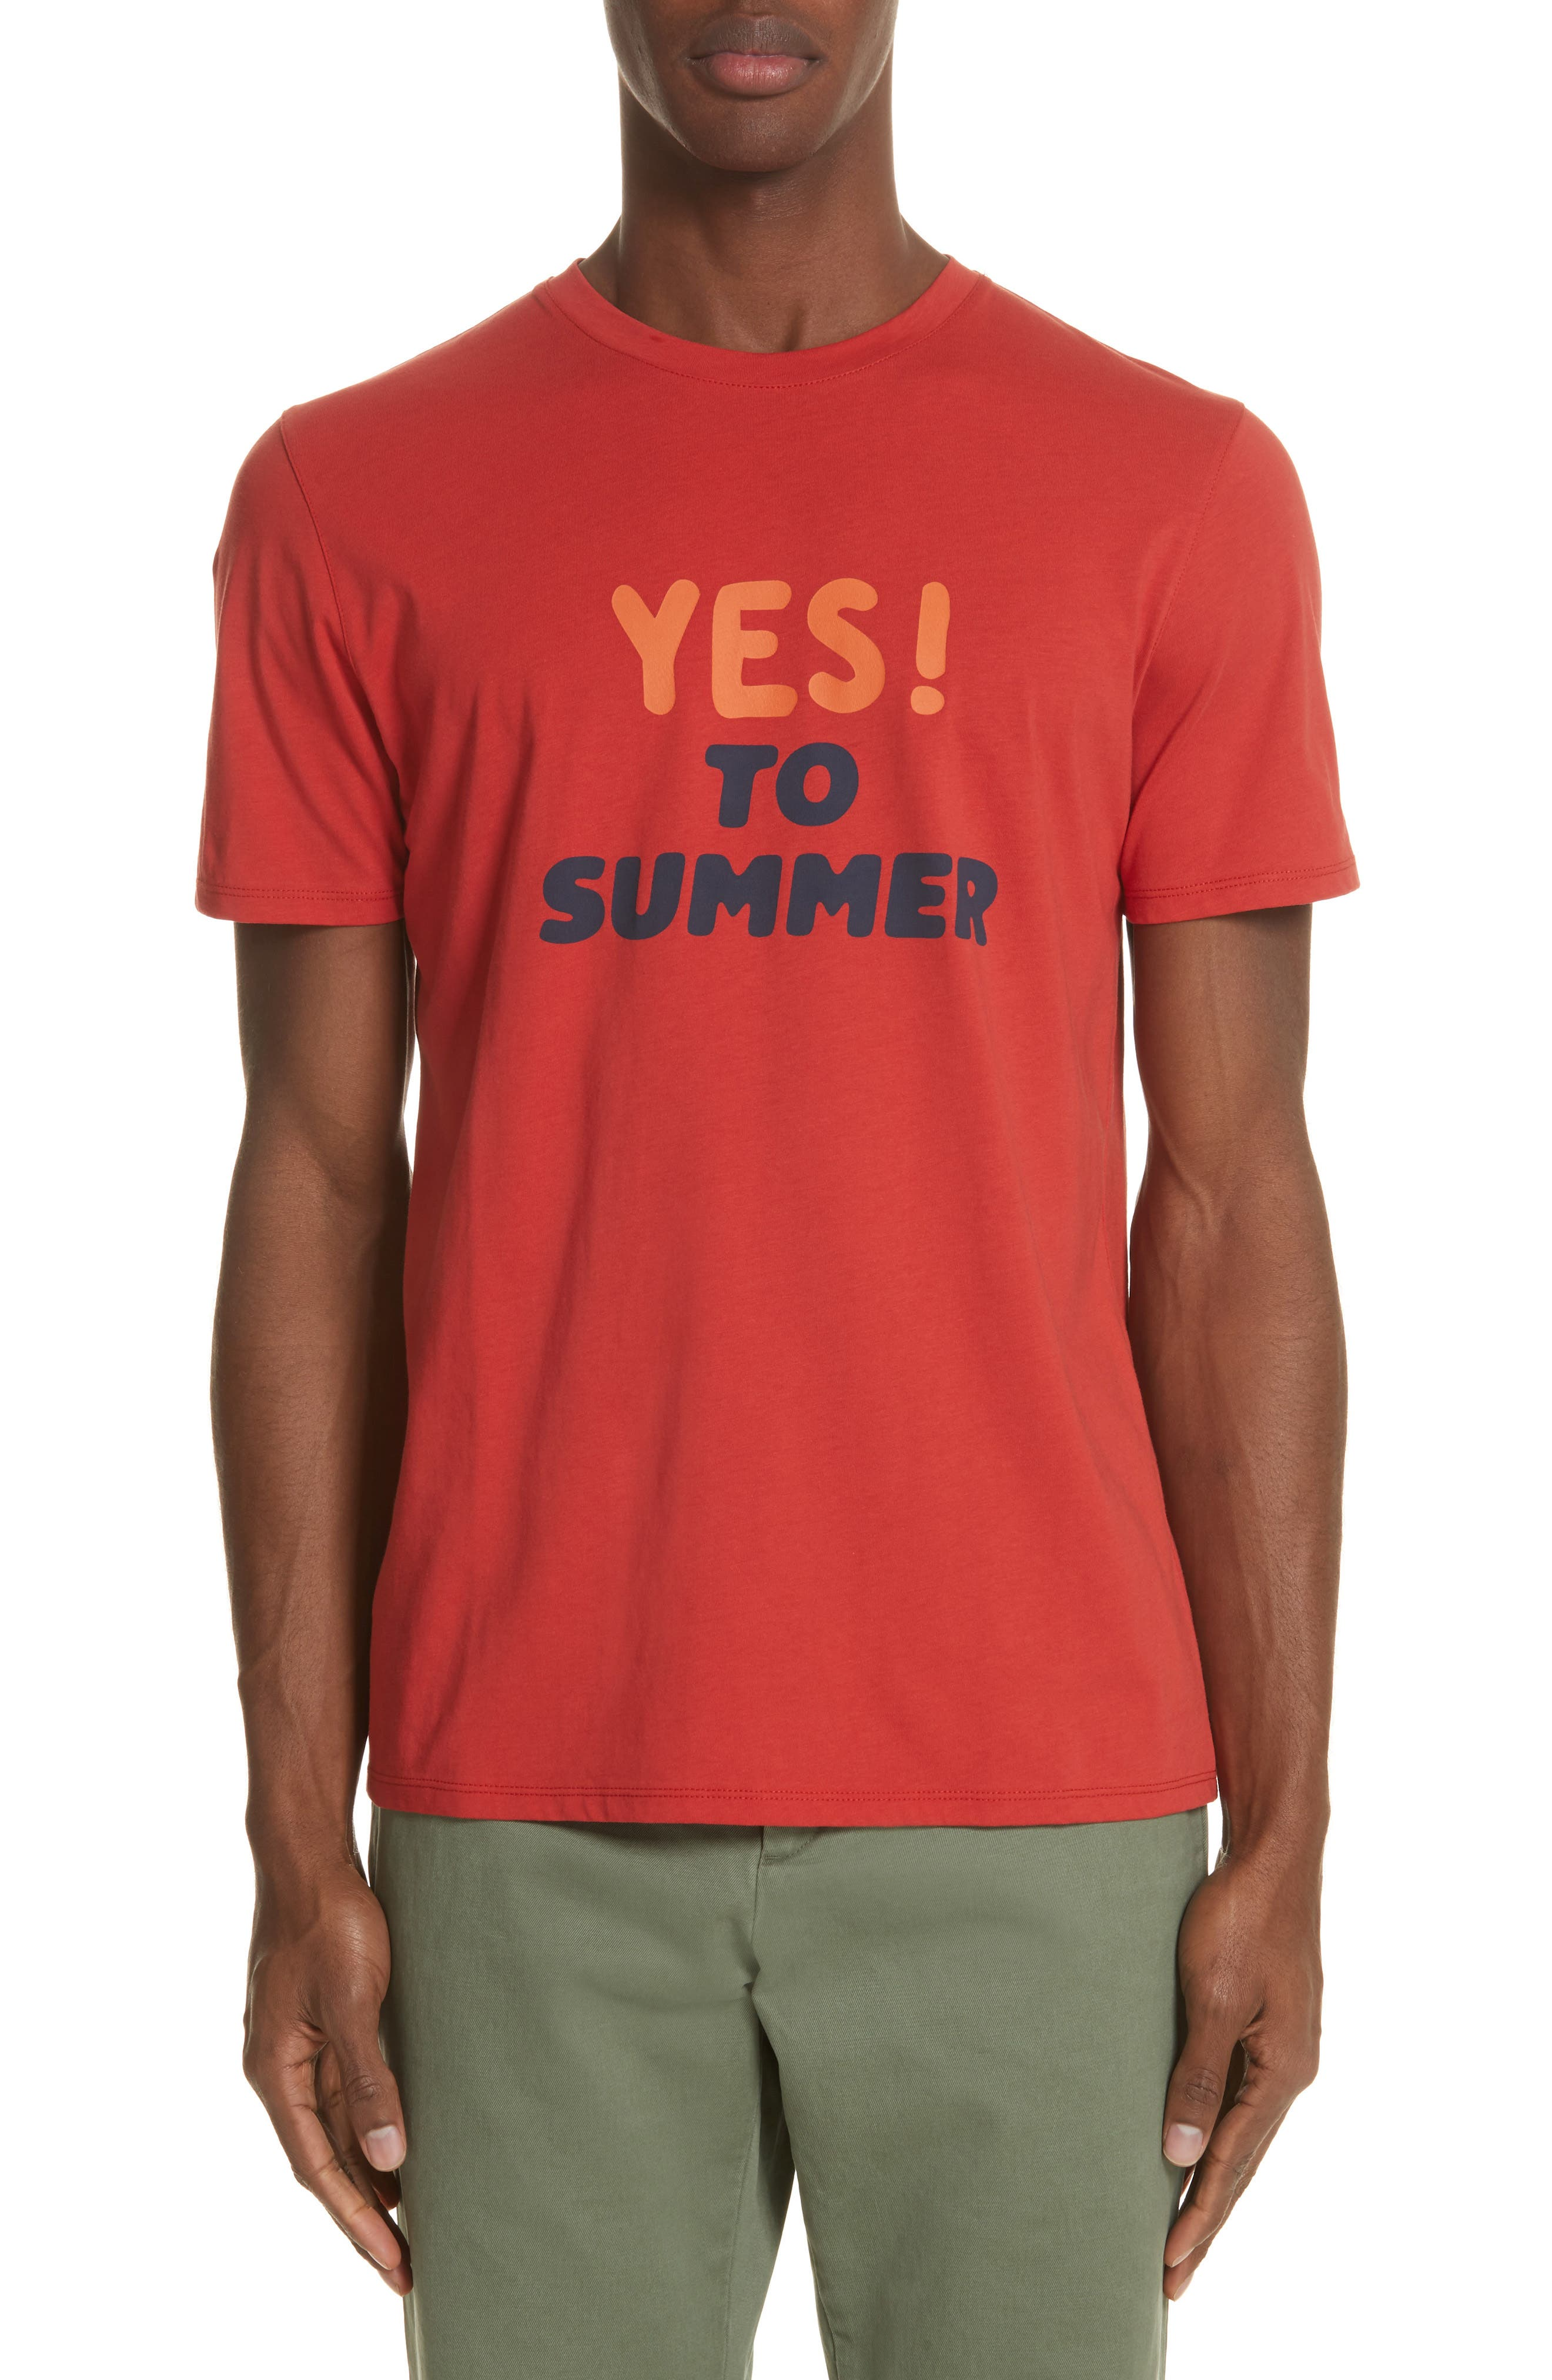 Main Image - A.P.C. Yes! To Summer Graphic T-Shirt